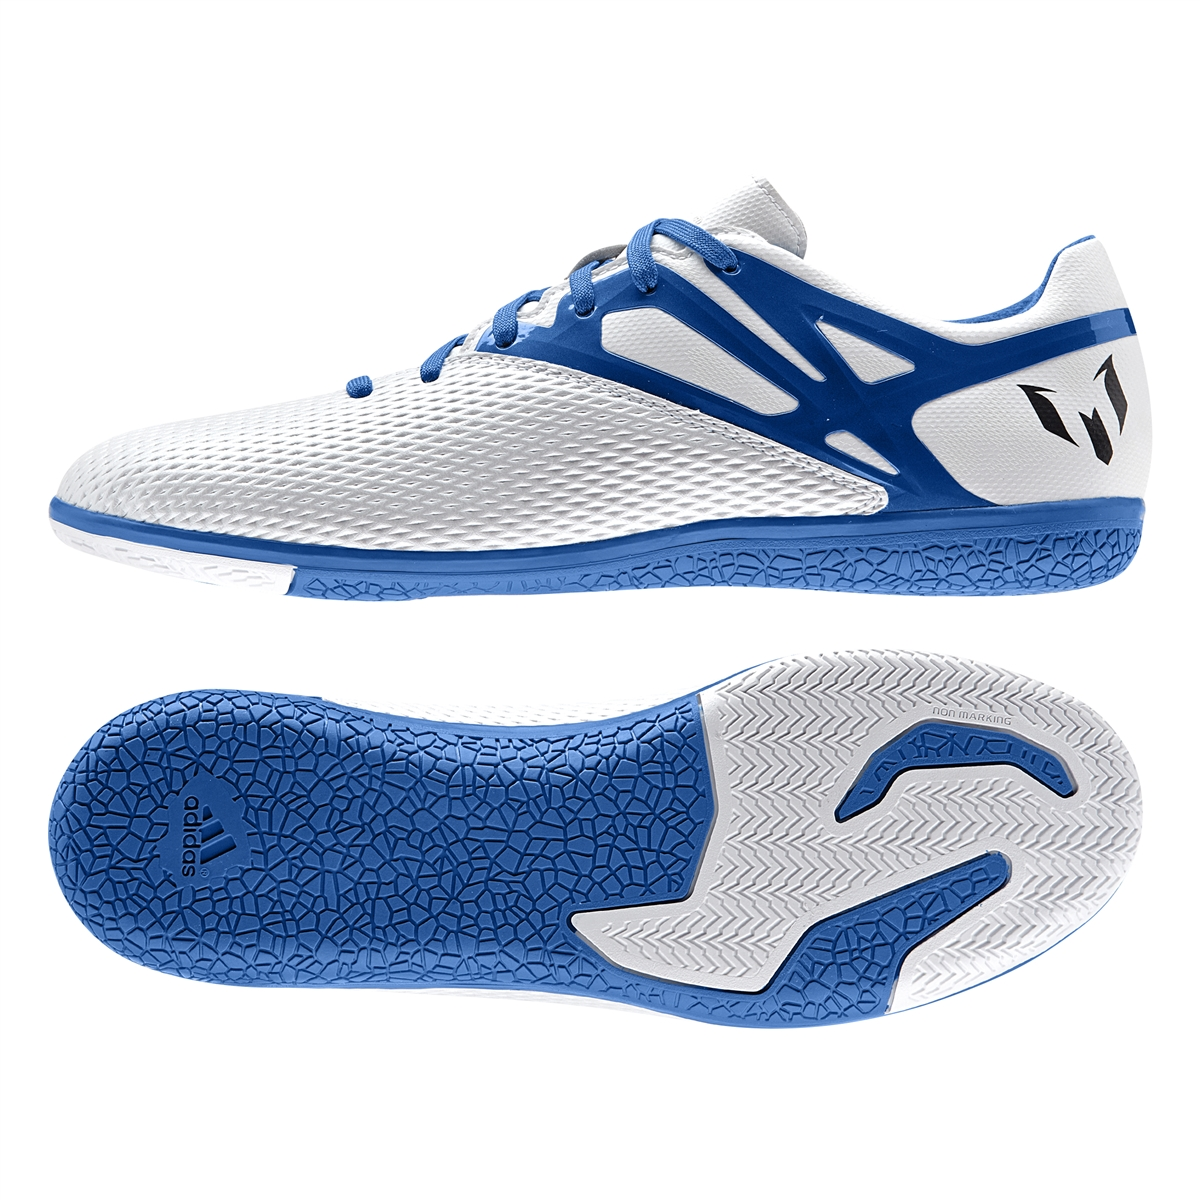 3ef568292 ... new zealand adidas messi 15.3 indoor soccer shoes white prime blue  black 6c6bc 07a4f